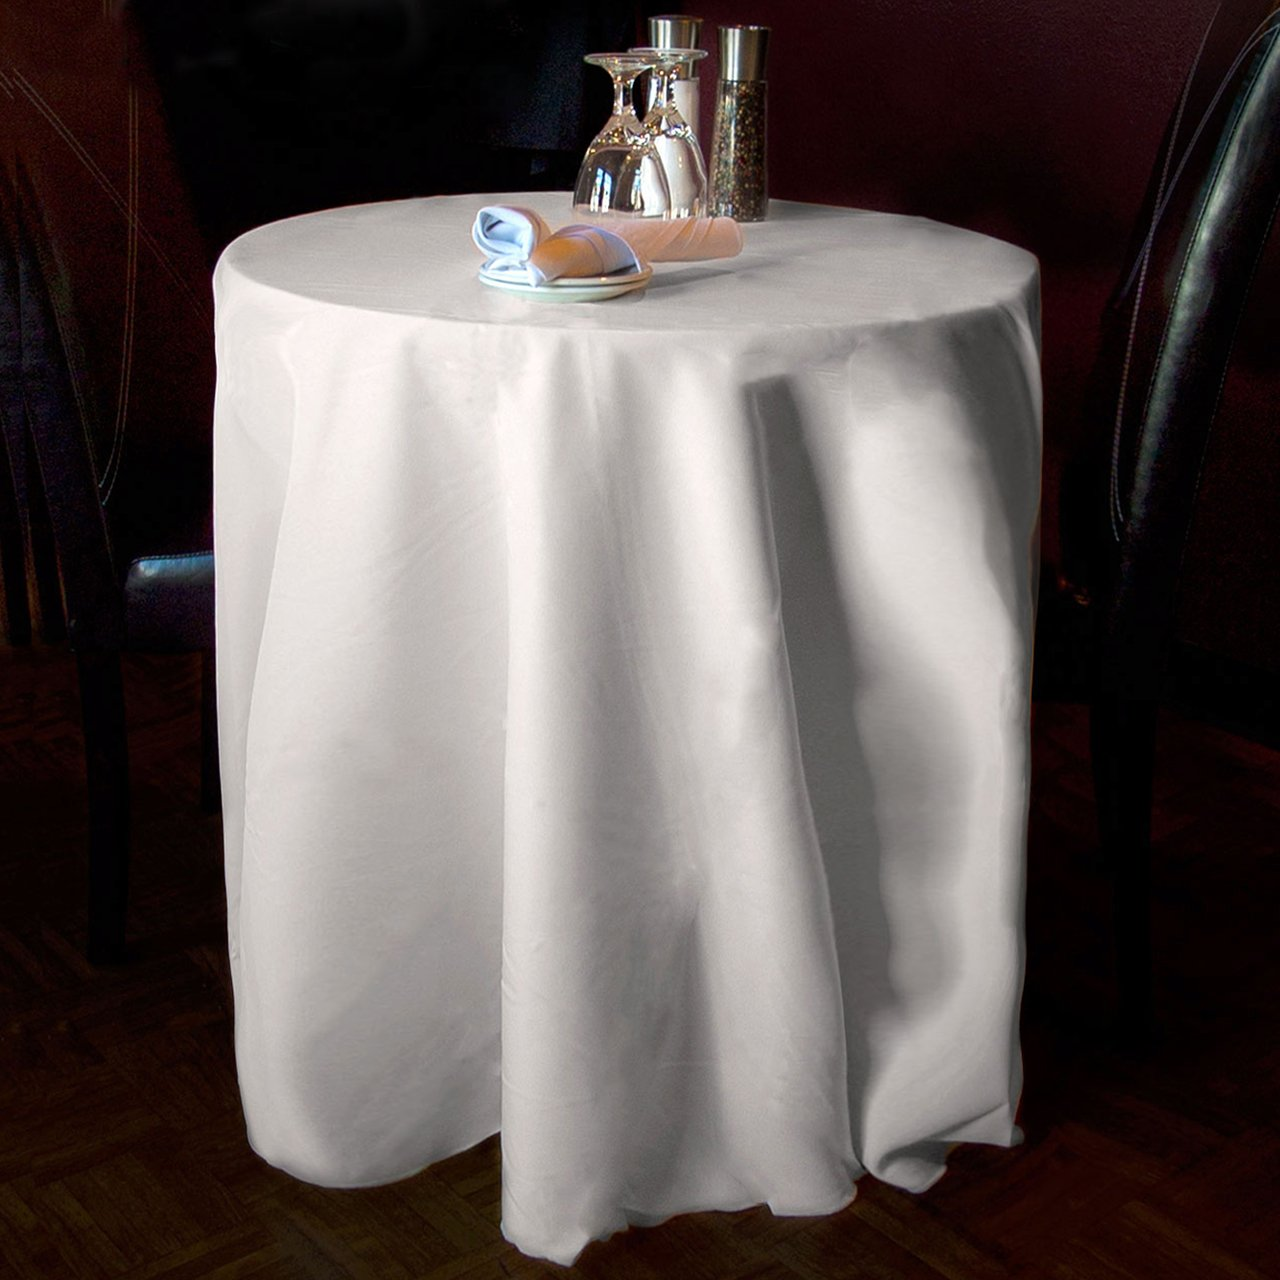 White round tablecloths cheap - Amazon Com New Pack Of 10 120 White Round Tablecloths Seamless 100 Heavy Woven Polyester Home Kitchen